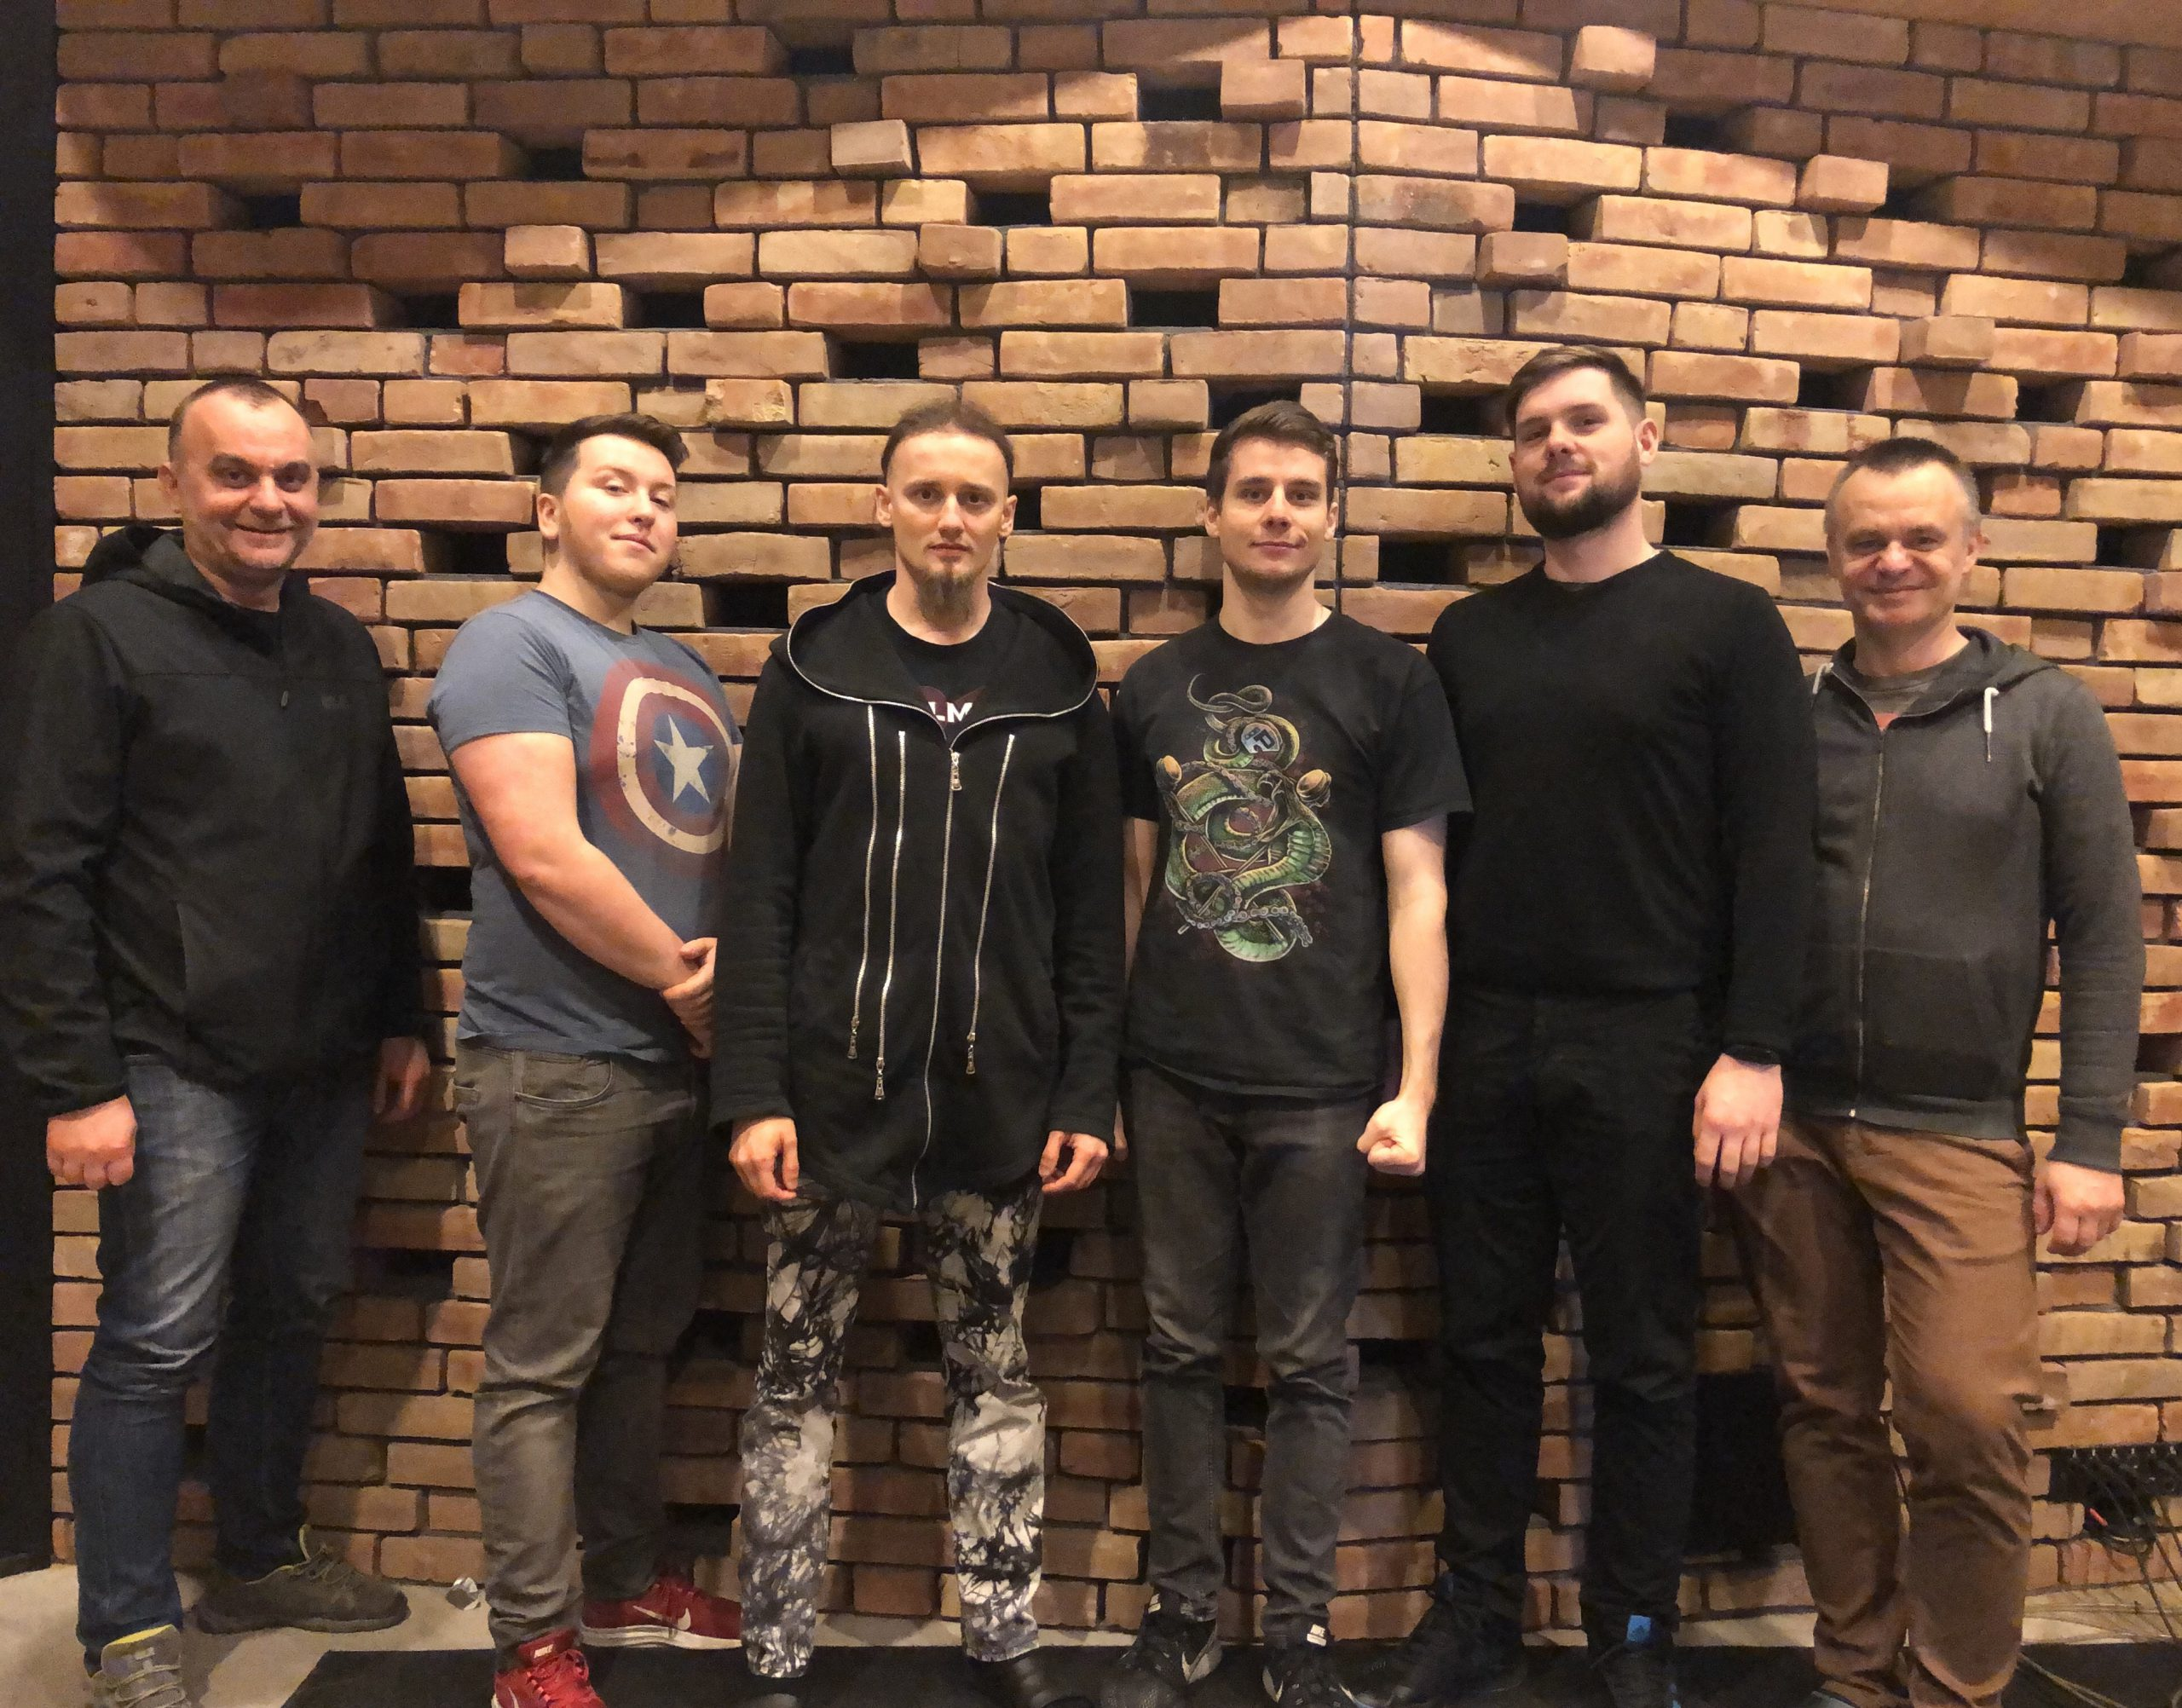 Psycho Visions - New album is recorded!